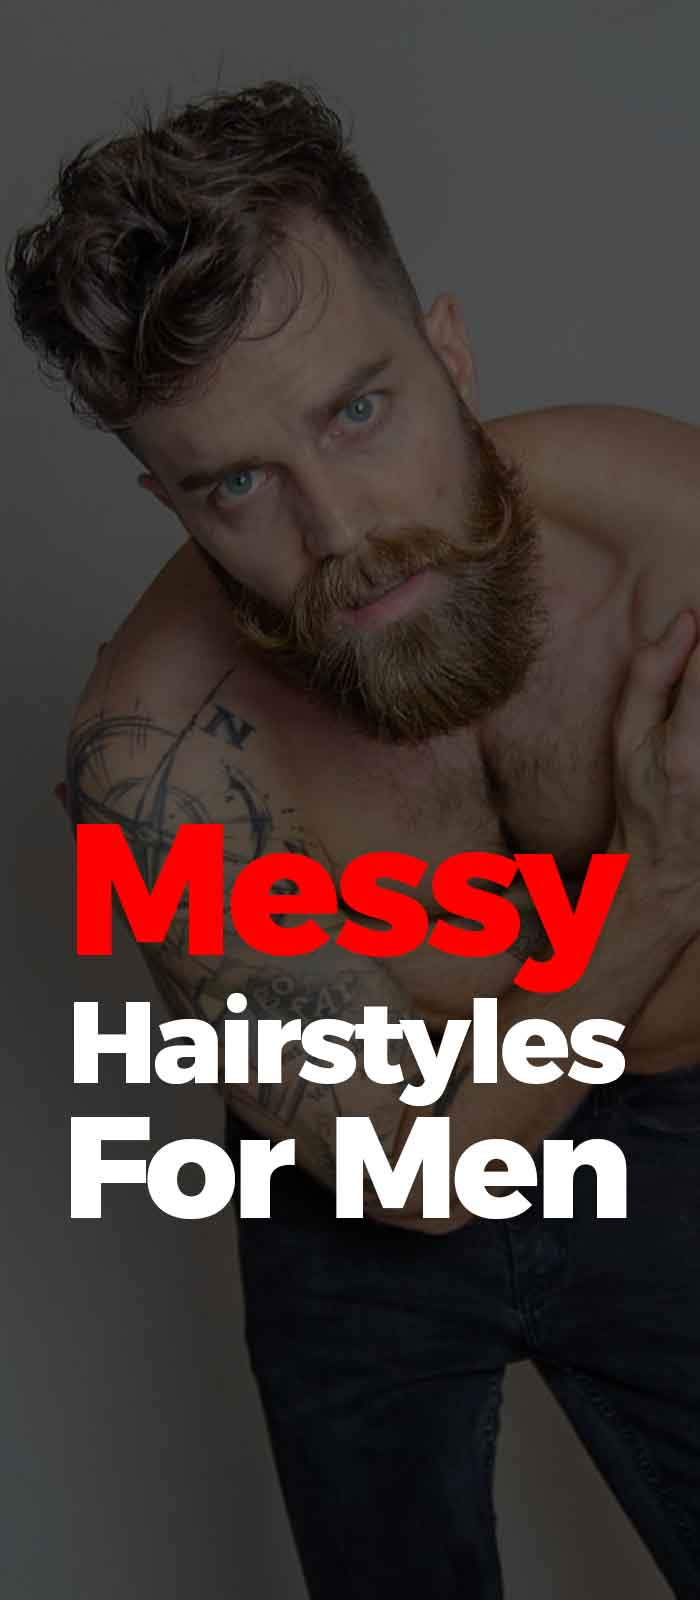 Messy Hairstyles For Men 2019